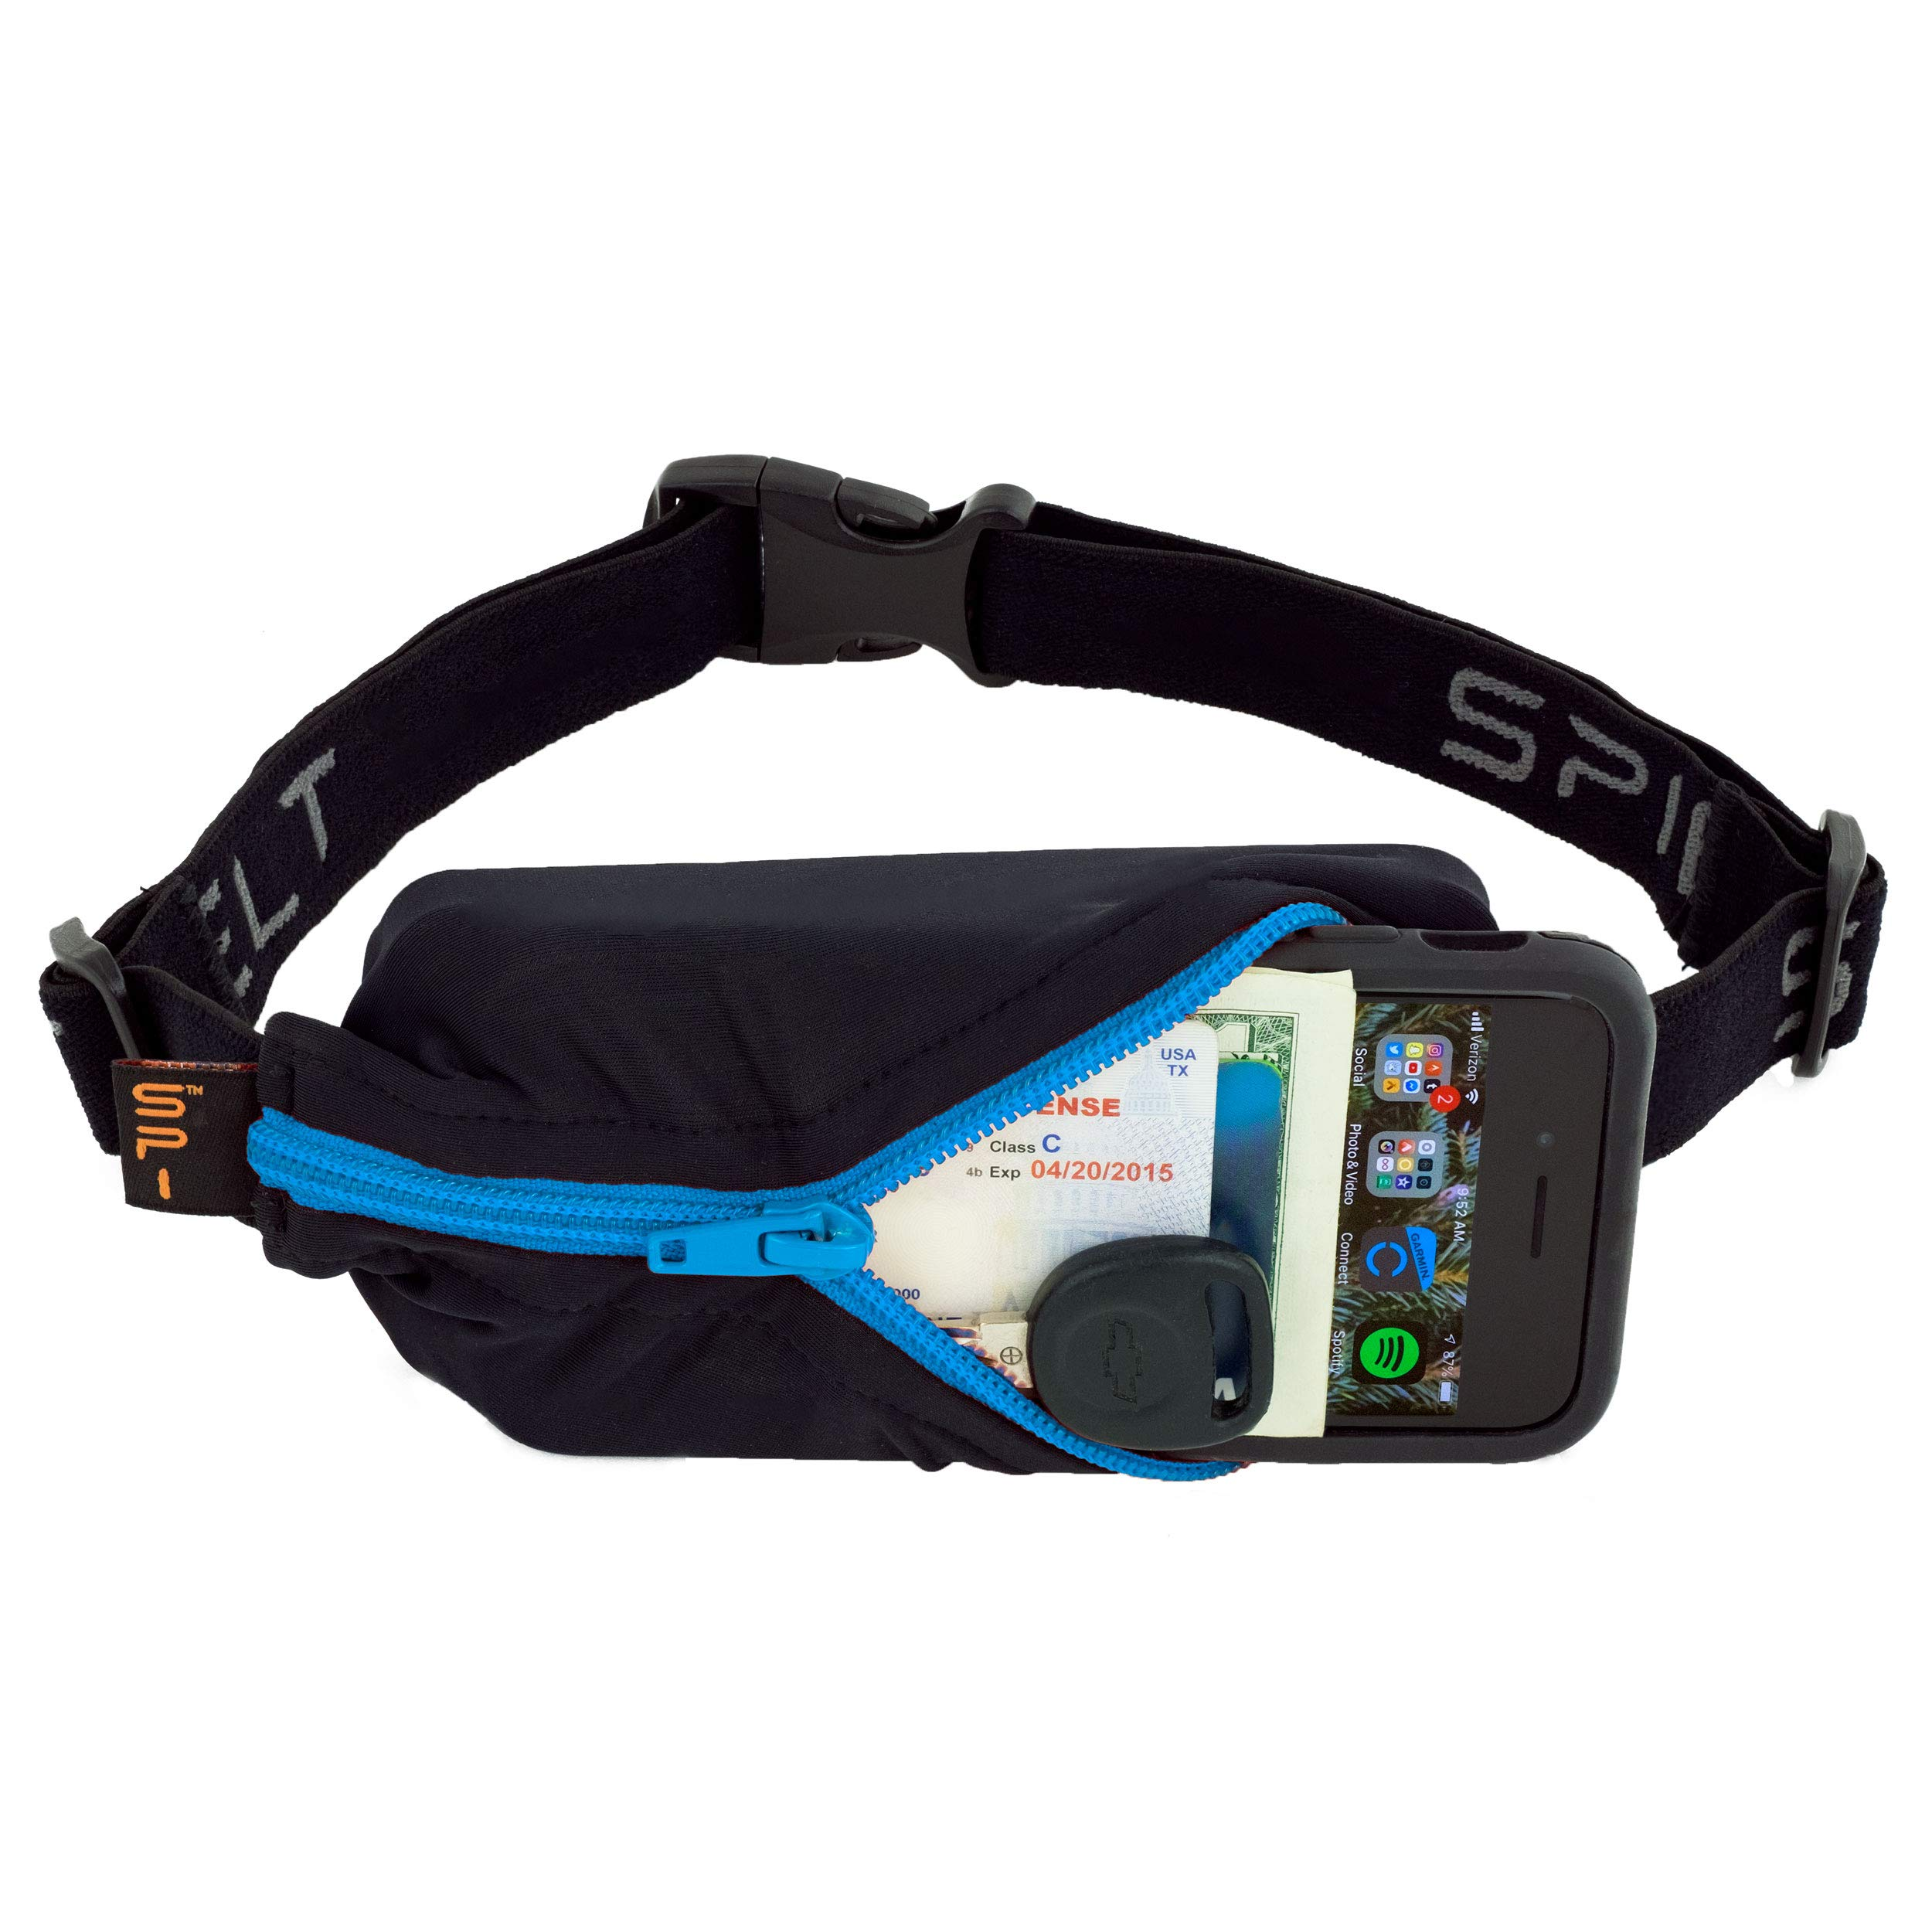 SPIbelt Sports/Running Belt: Original - No-Bounce Running Belt for Runners, Athletes and Adventurers - Fits iPhone 6 and Other Large Phones, Turquoise Zipper by SPIbelt